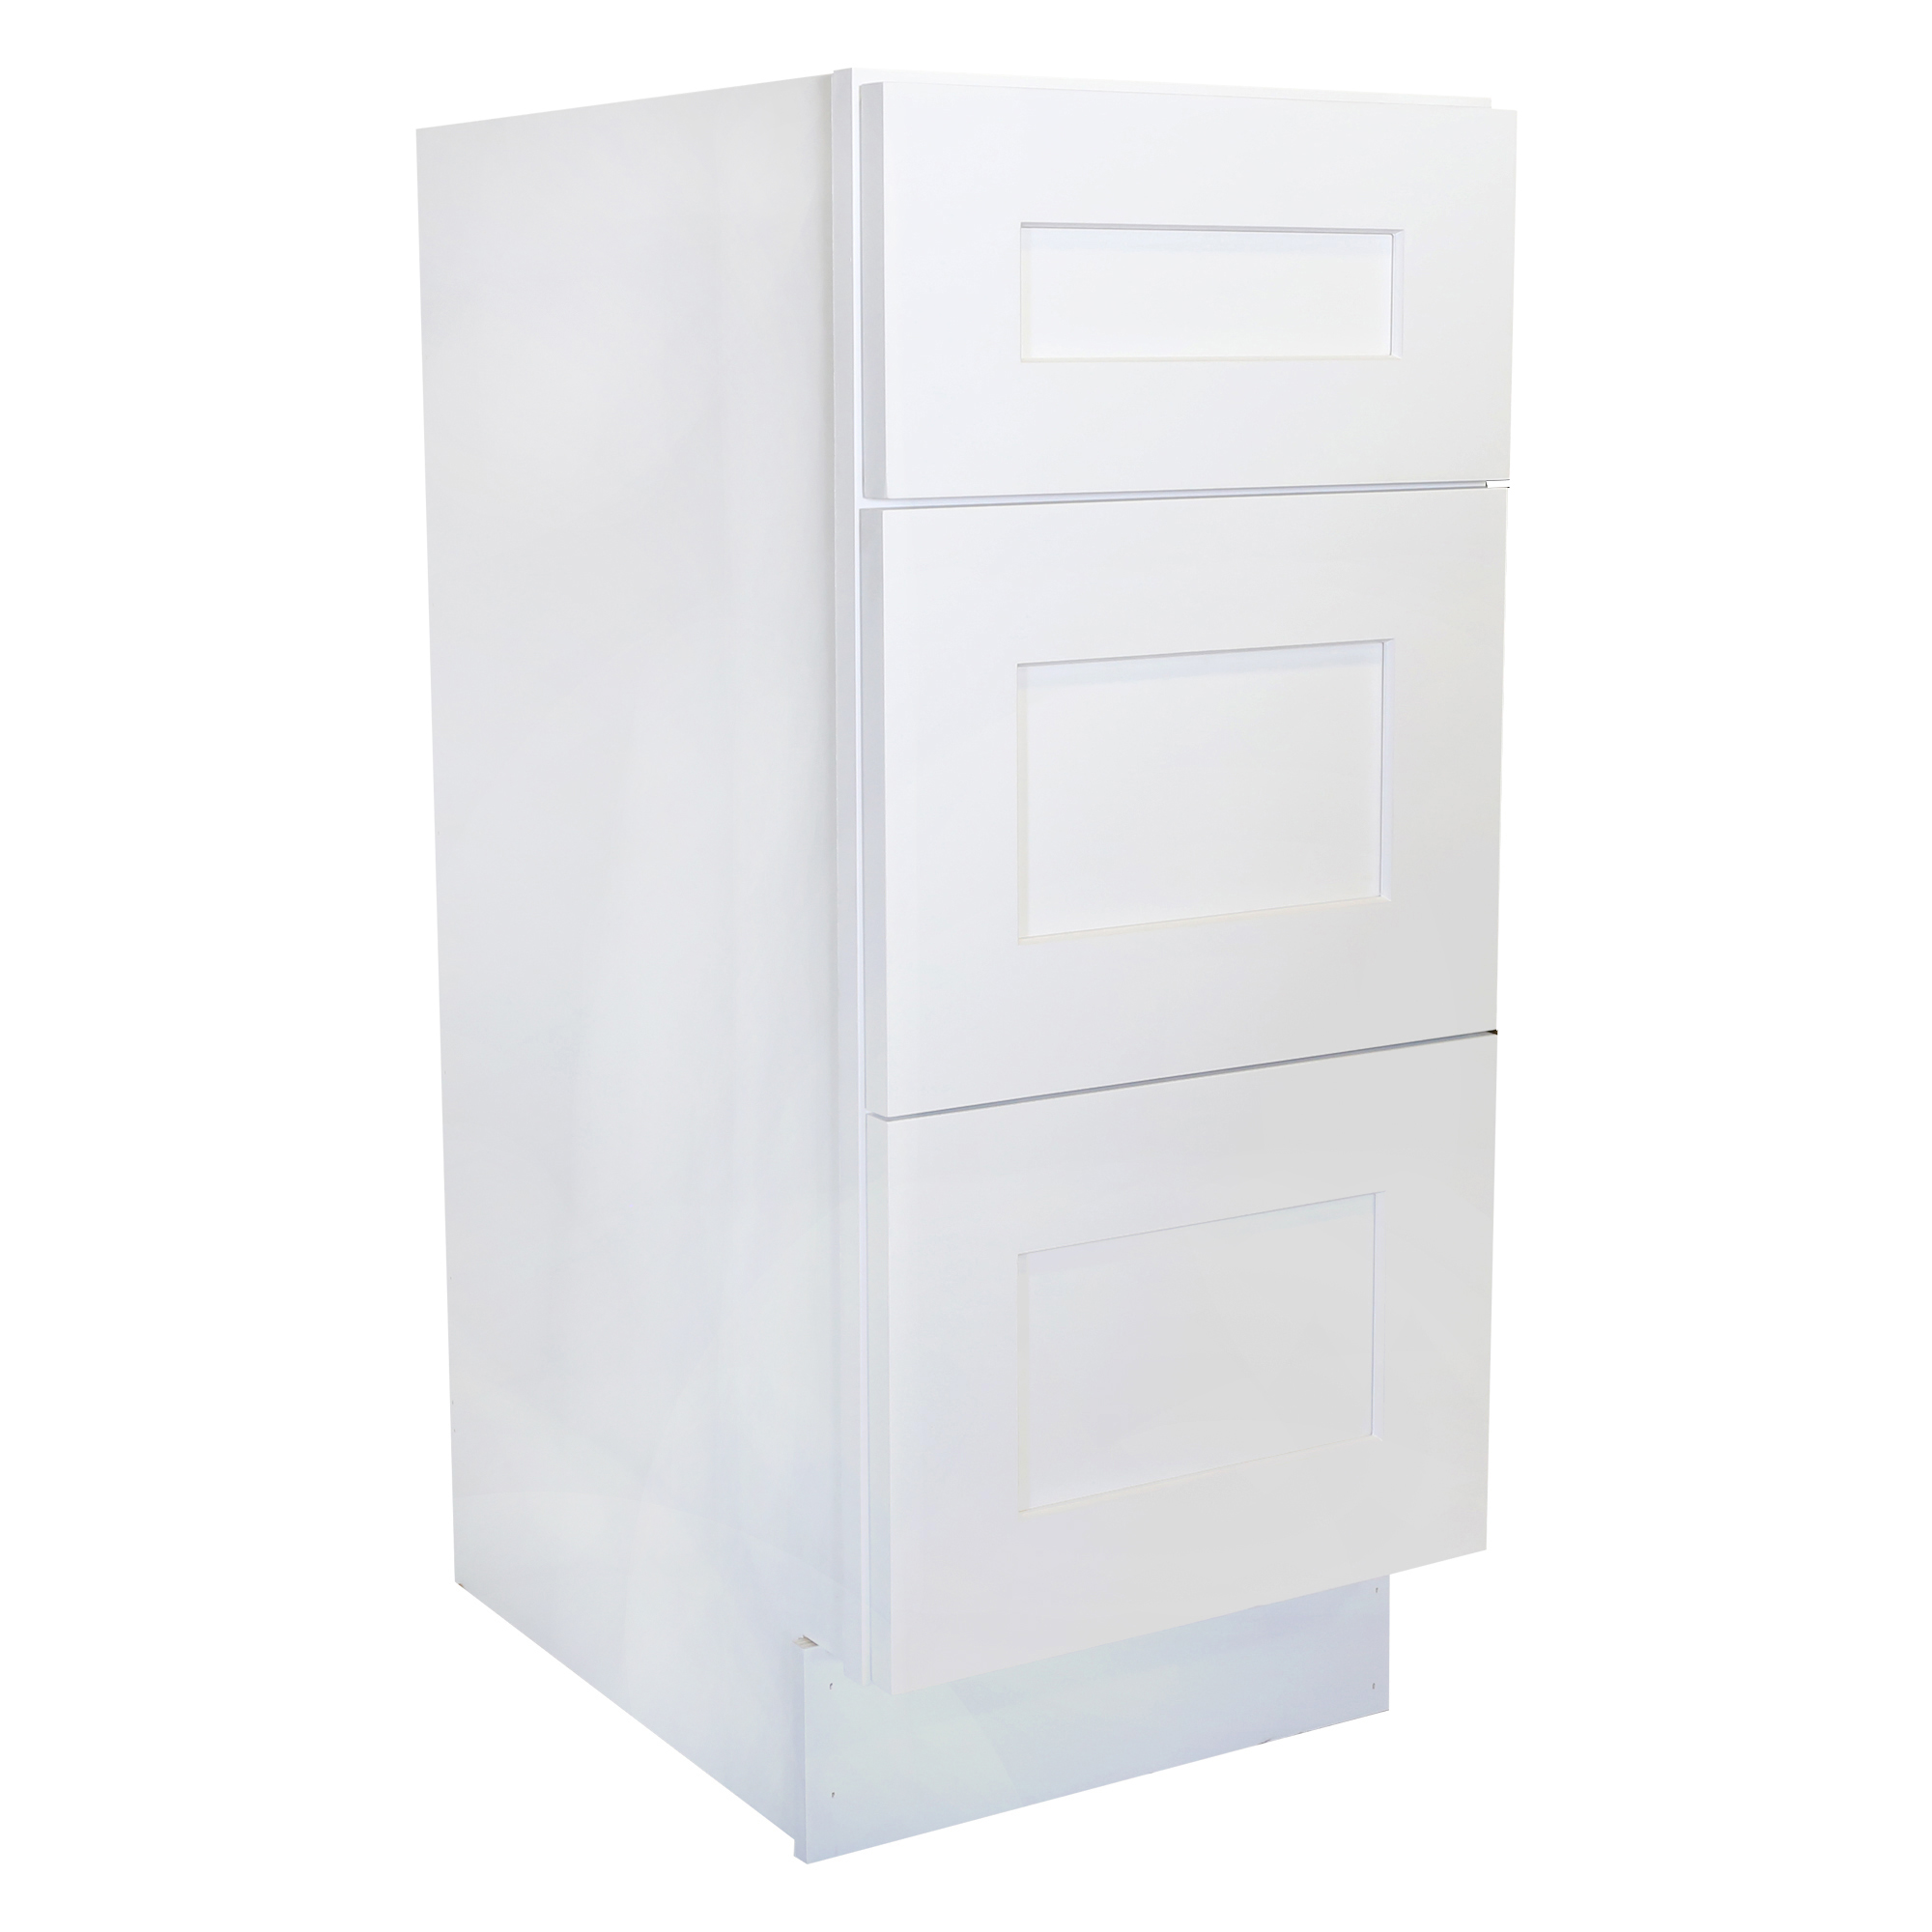 Ready to Assemble 18Wx34.5Hx21D in. Shaker VANITY DRAWER BASE-3 DRAWERS in White